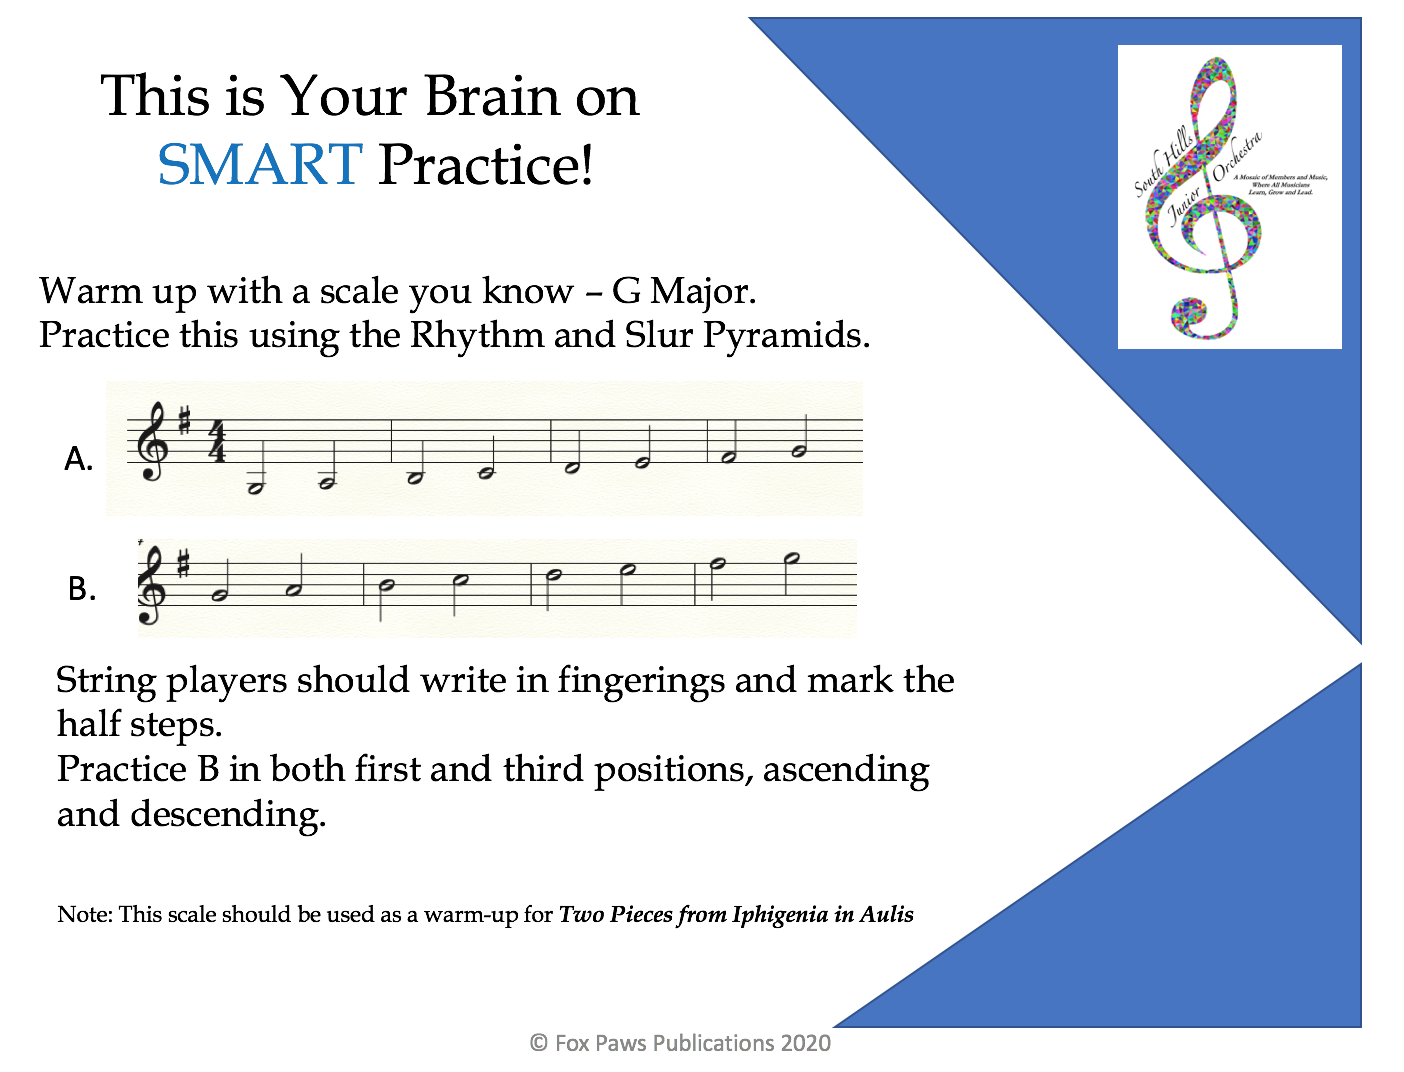 This is your brain on SMART Practice